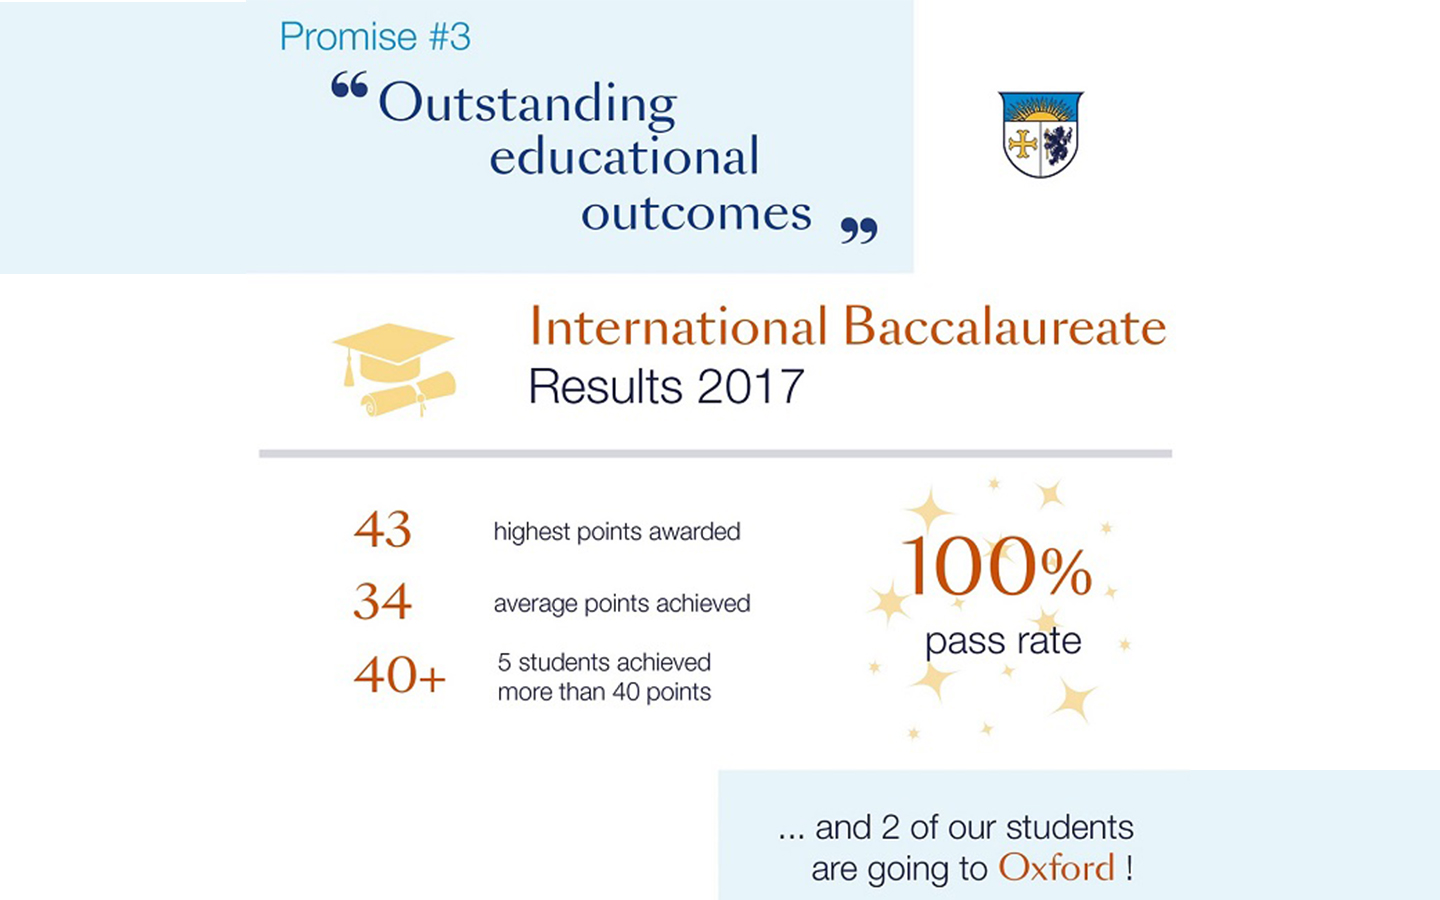 Beau Soleil 2017 Academic results